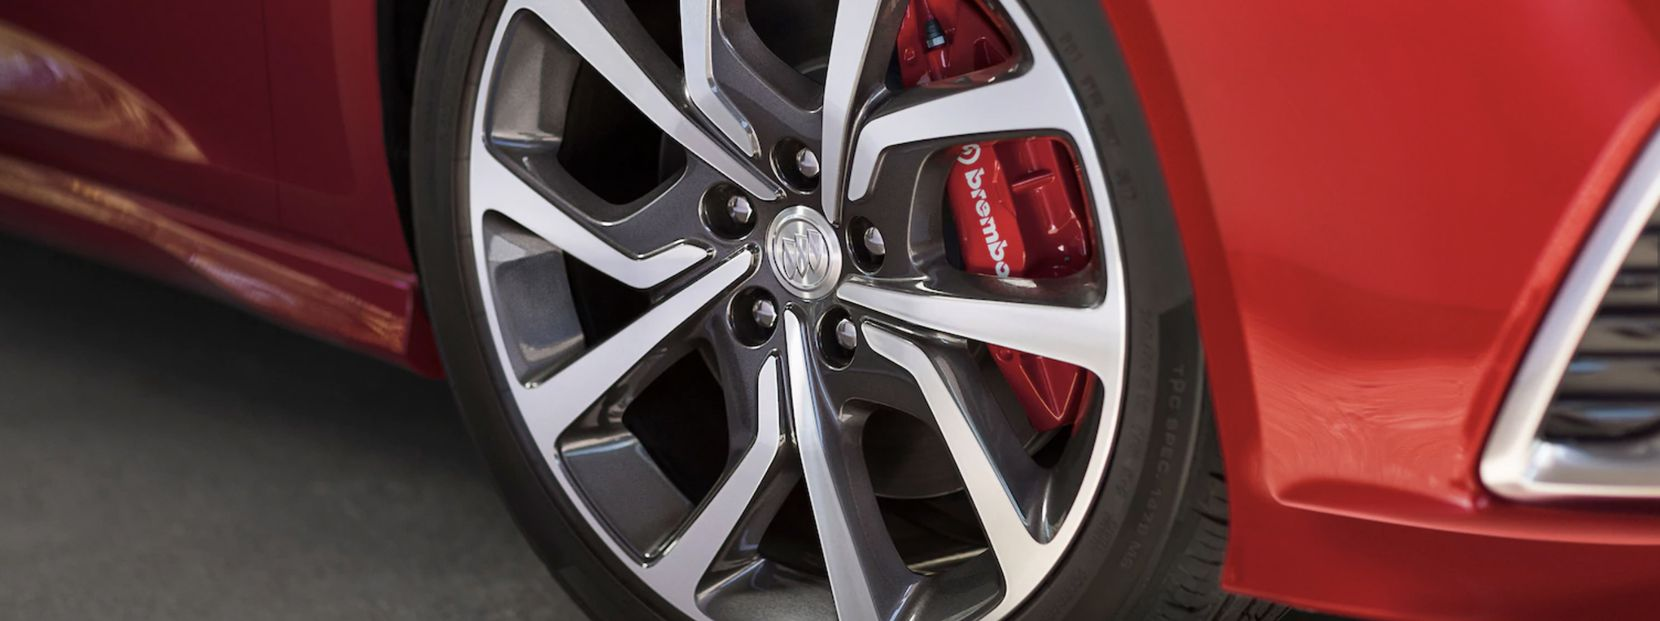 Stylish red brake calipers on the 2018 Buick Regal GS